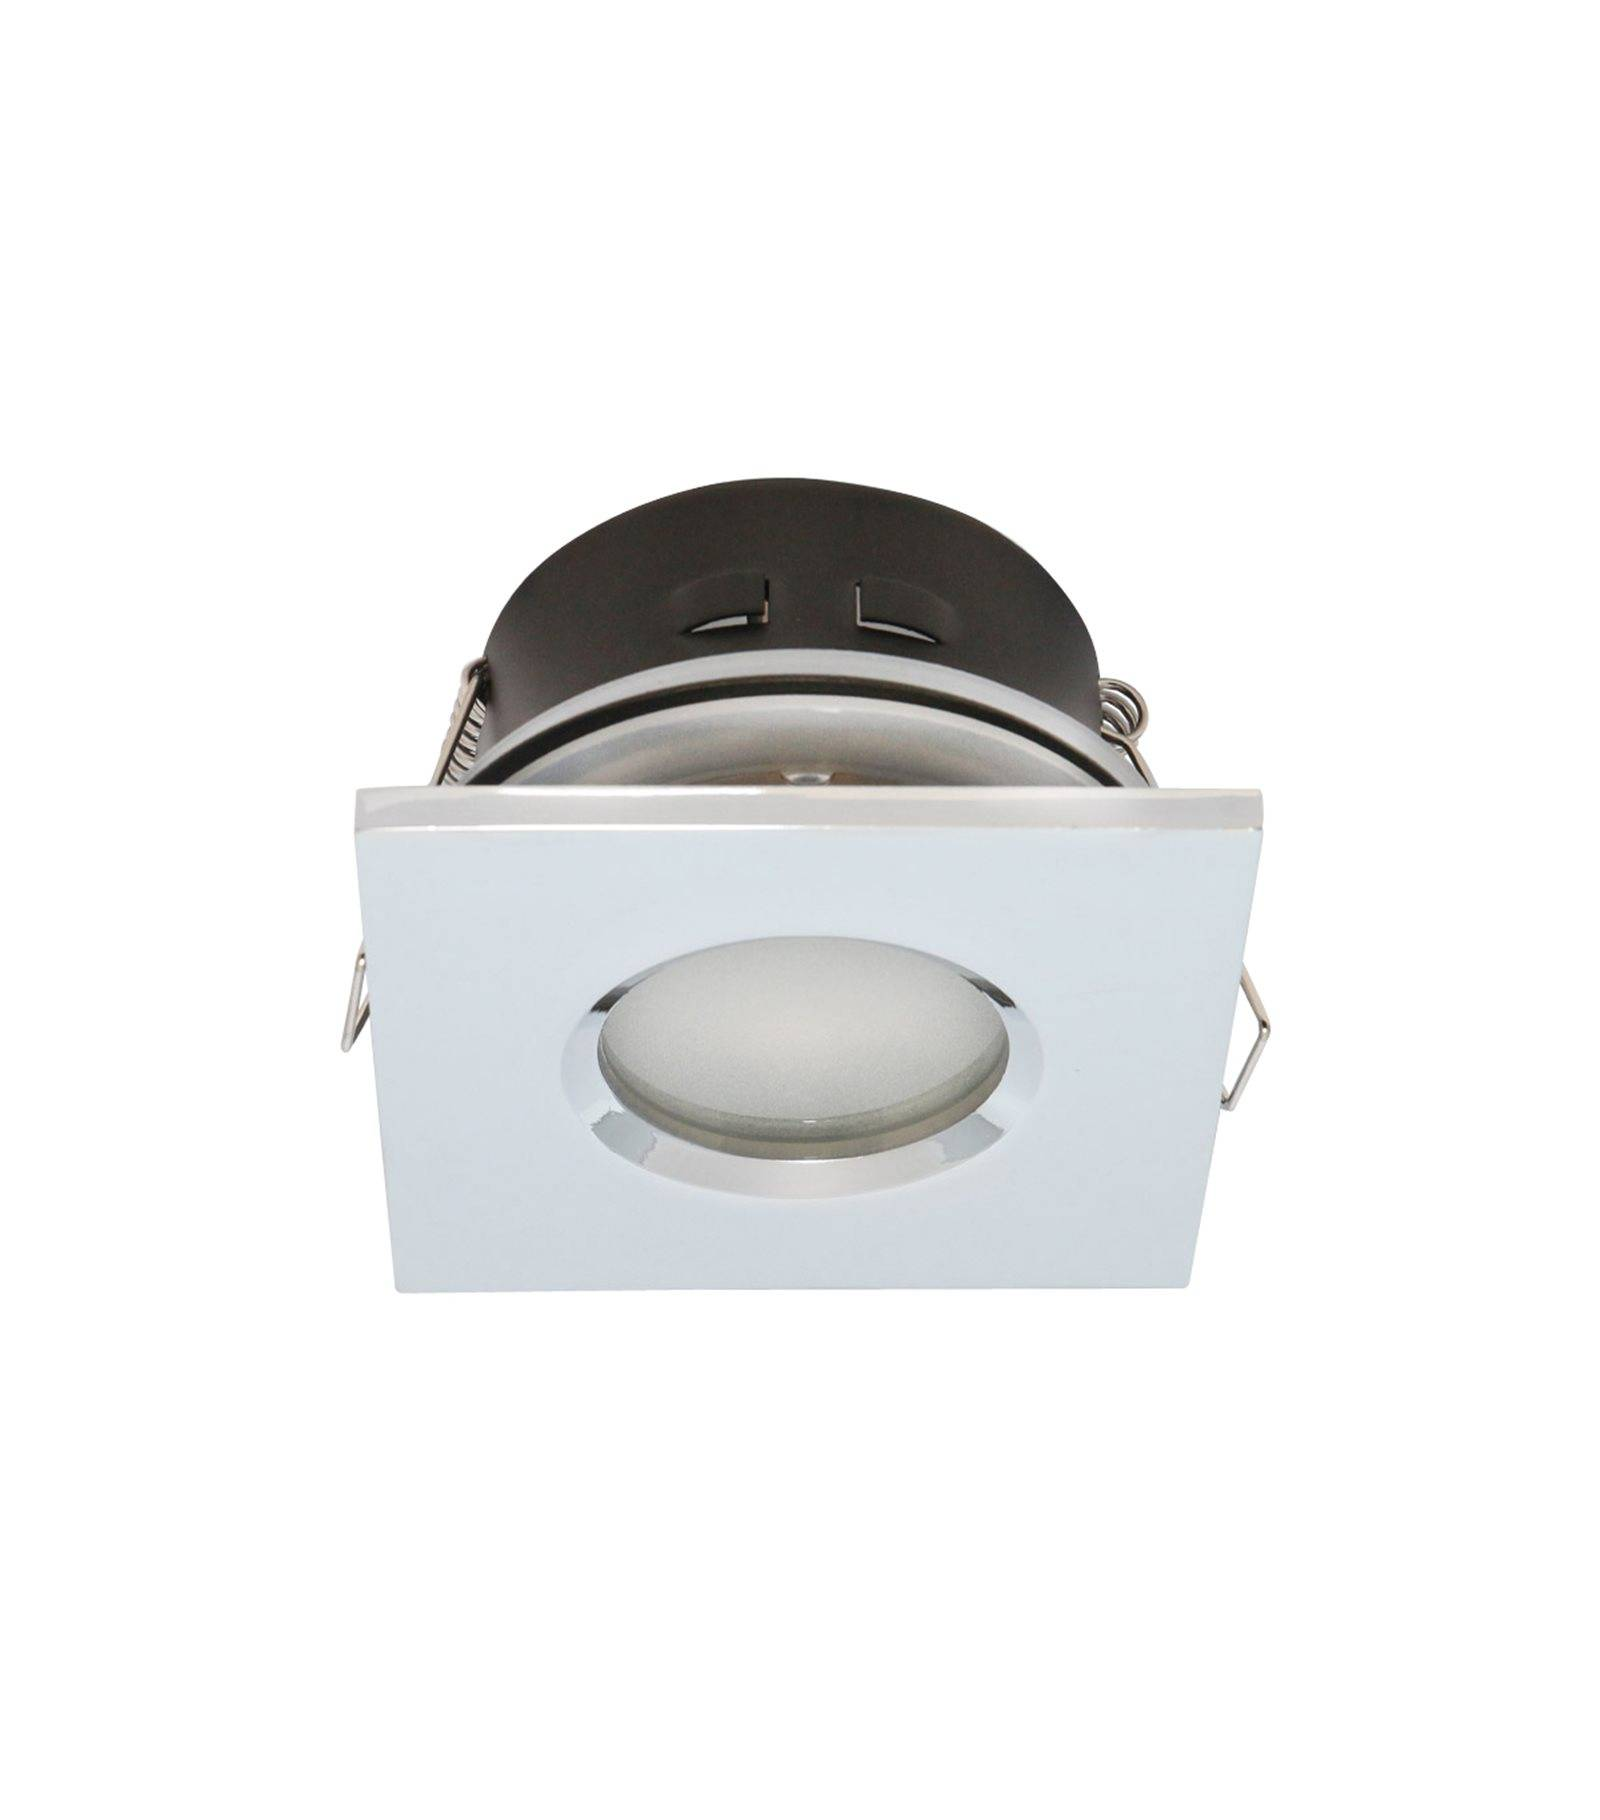 Spot encastrable salle de bain chrome carr gu5 3 mr16 - Spot led encastrable salle de bain ip65 etanche ...